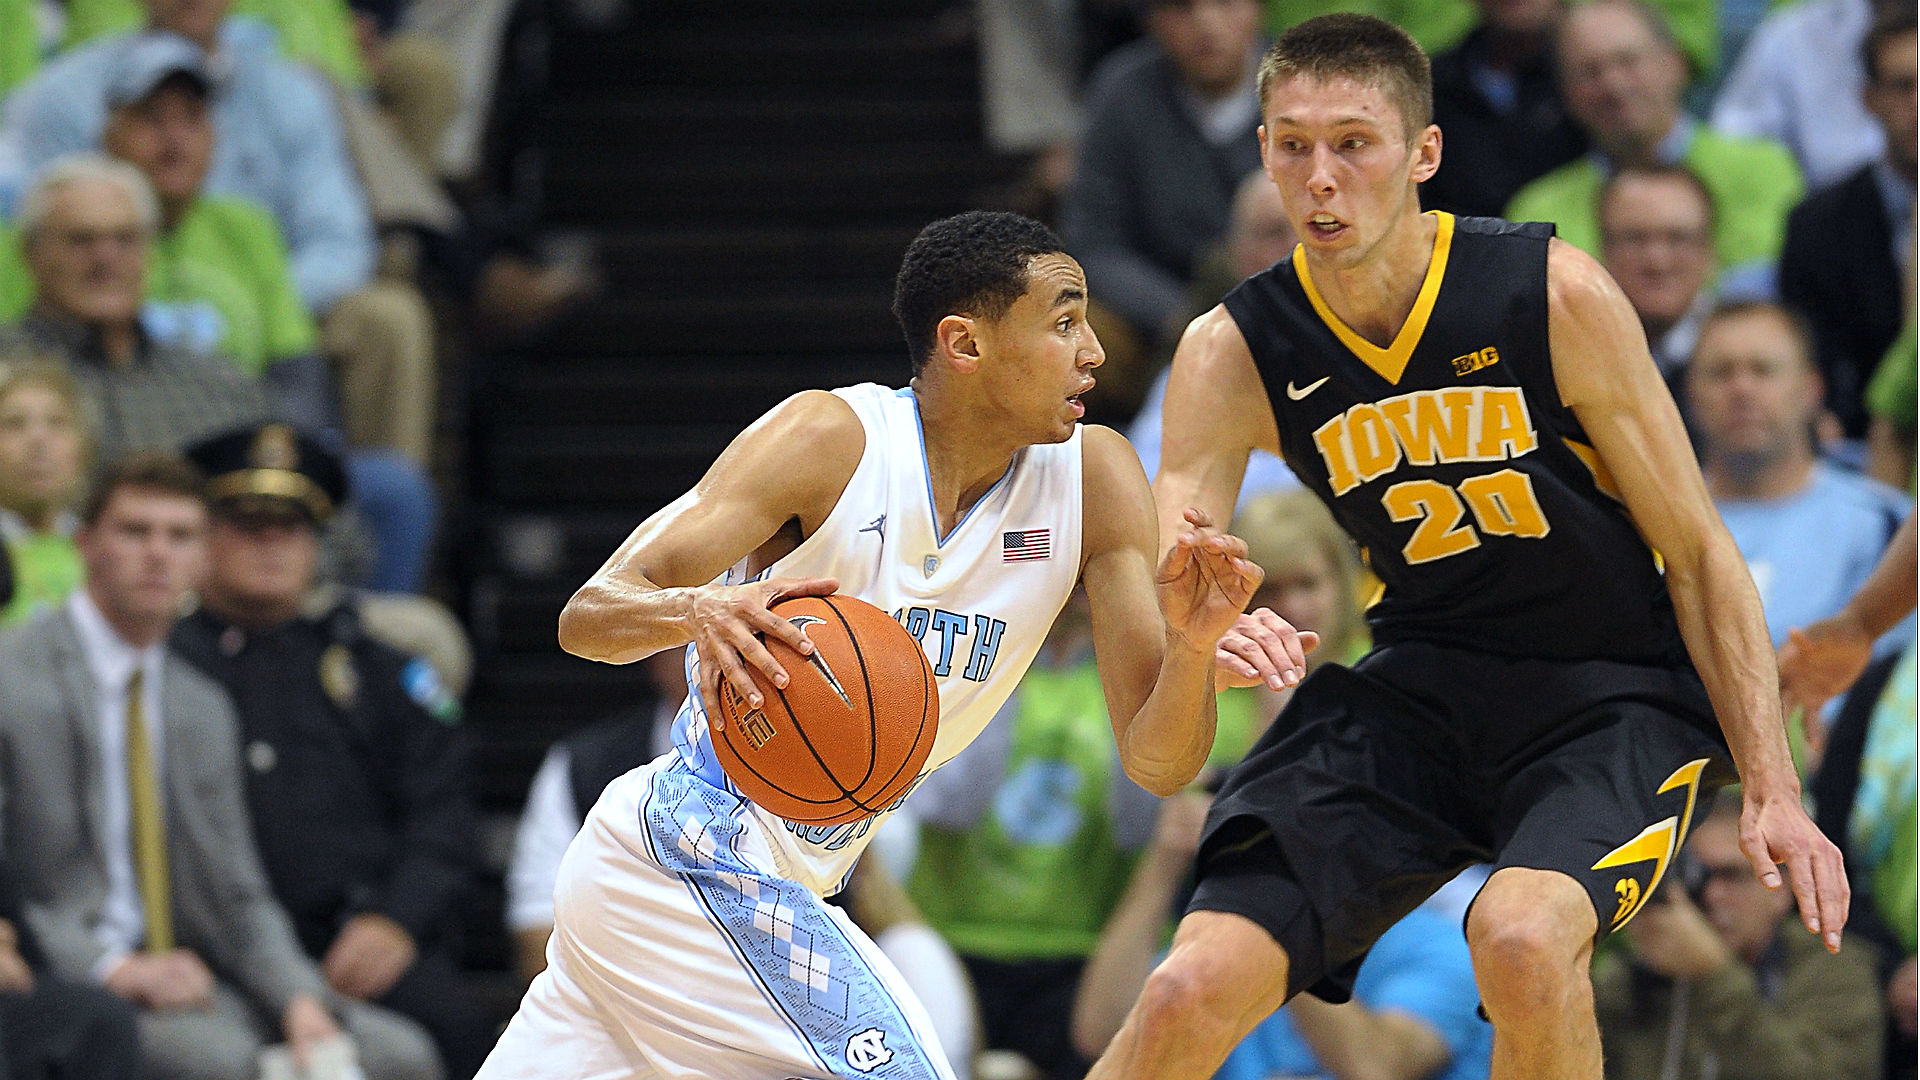 NCAA Tournament odds - Values emerge with early-season losses